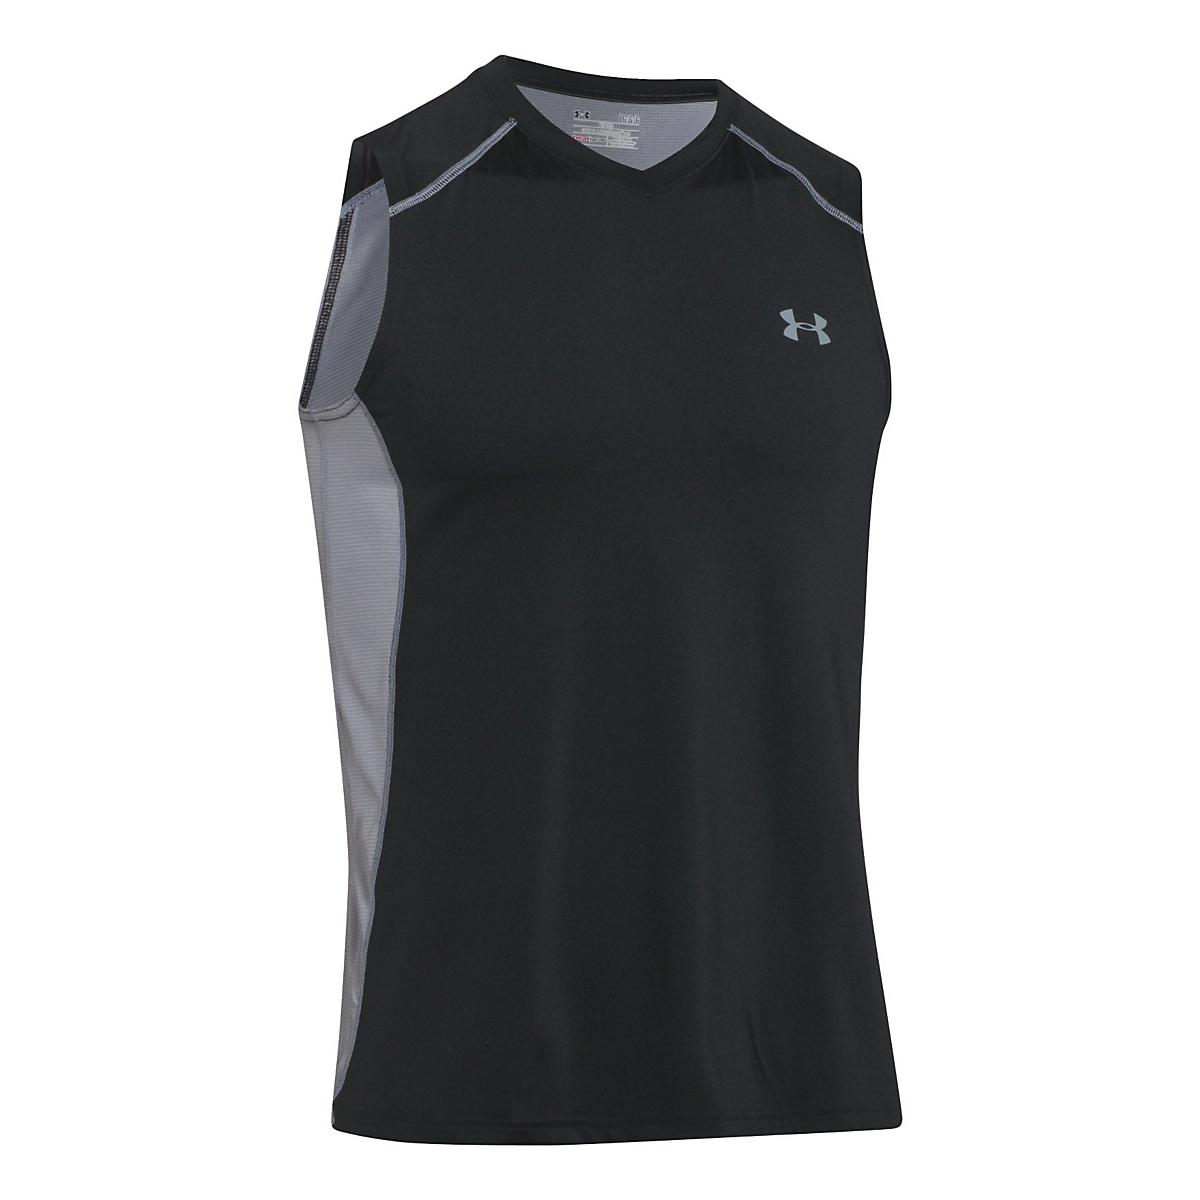 Men's Under Armour�Raid Sleeveless Tee